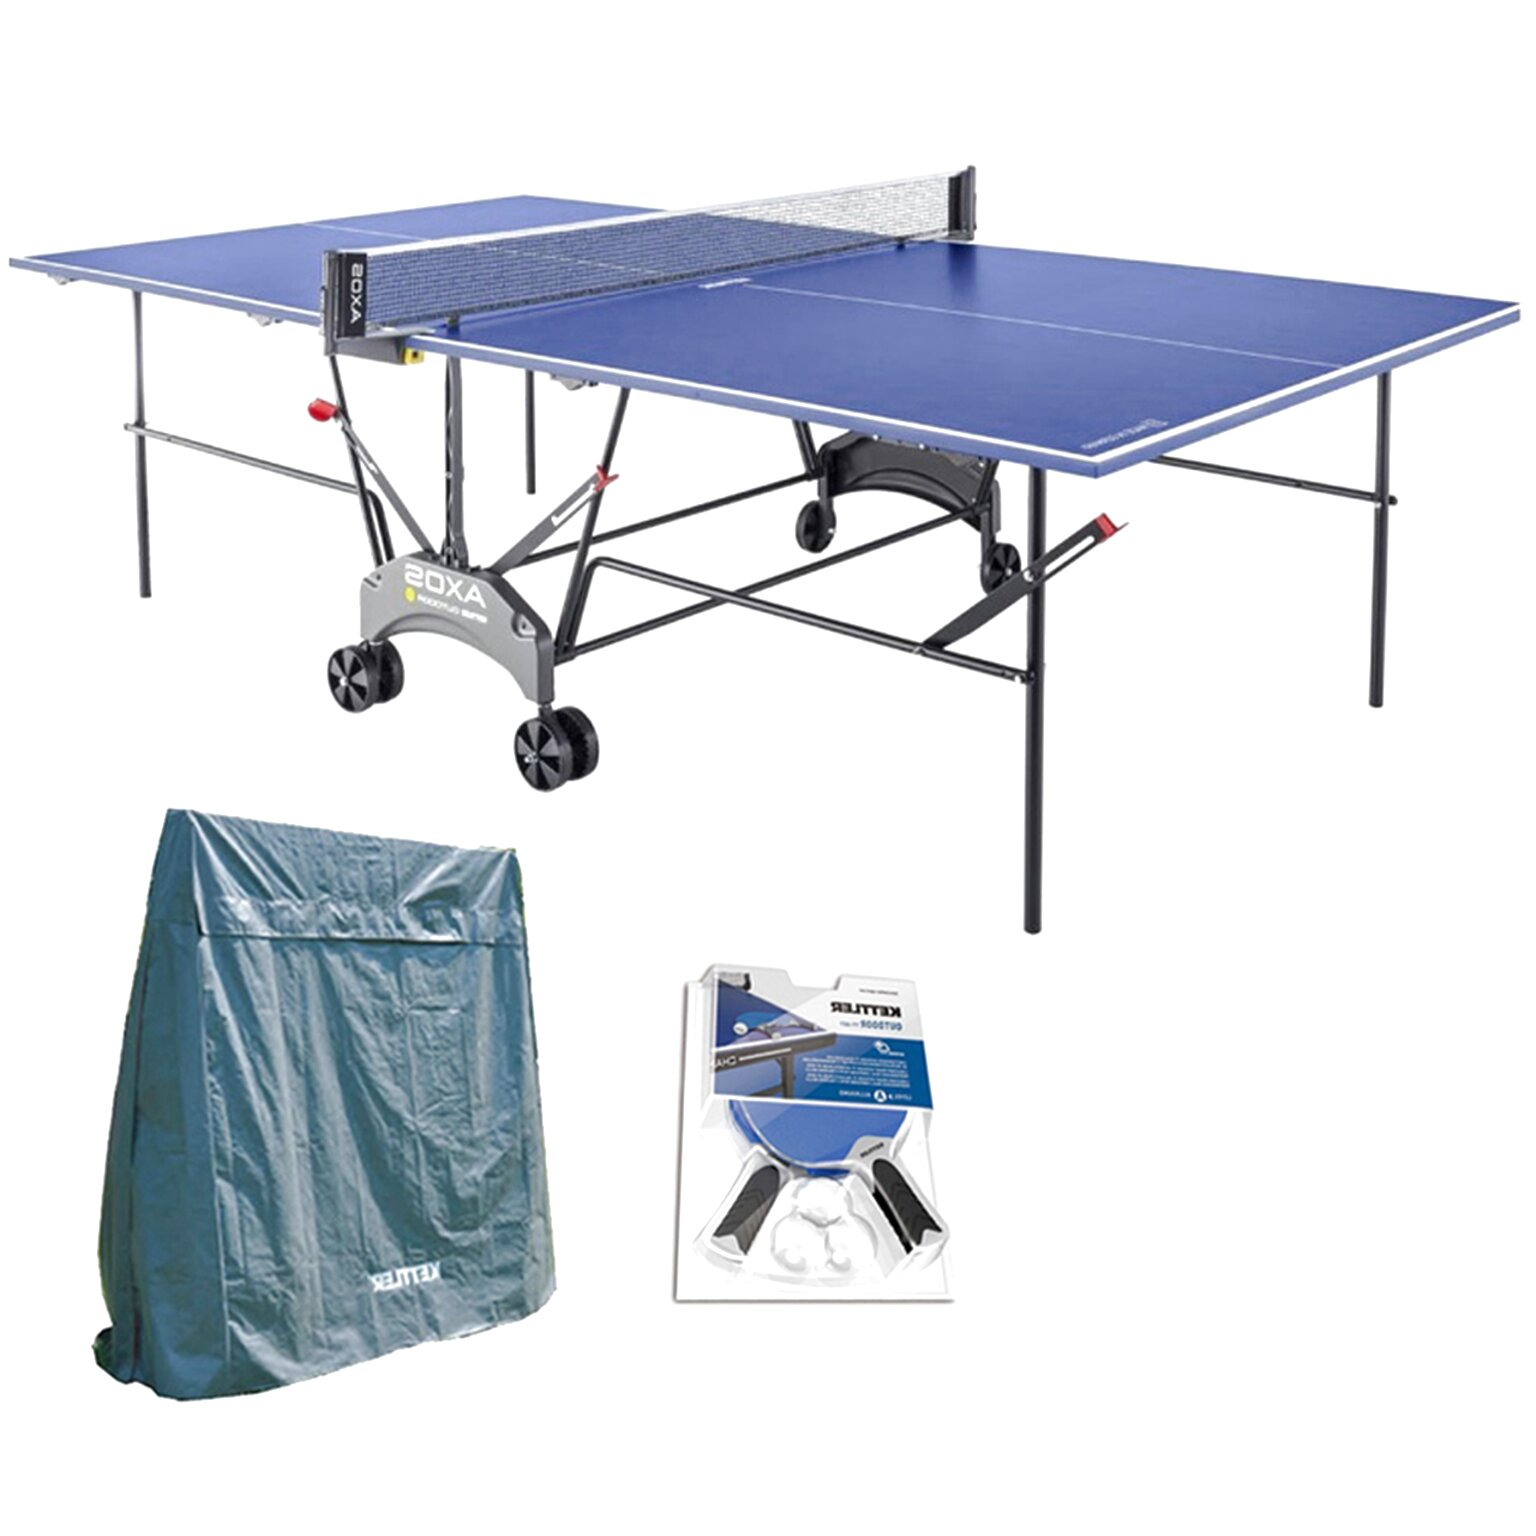 kettler table tennis table for sale